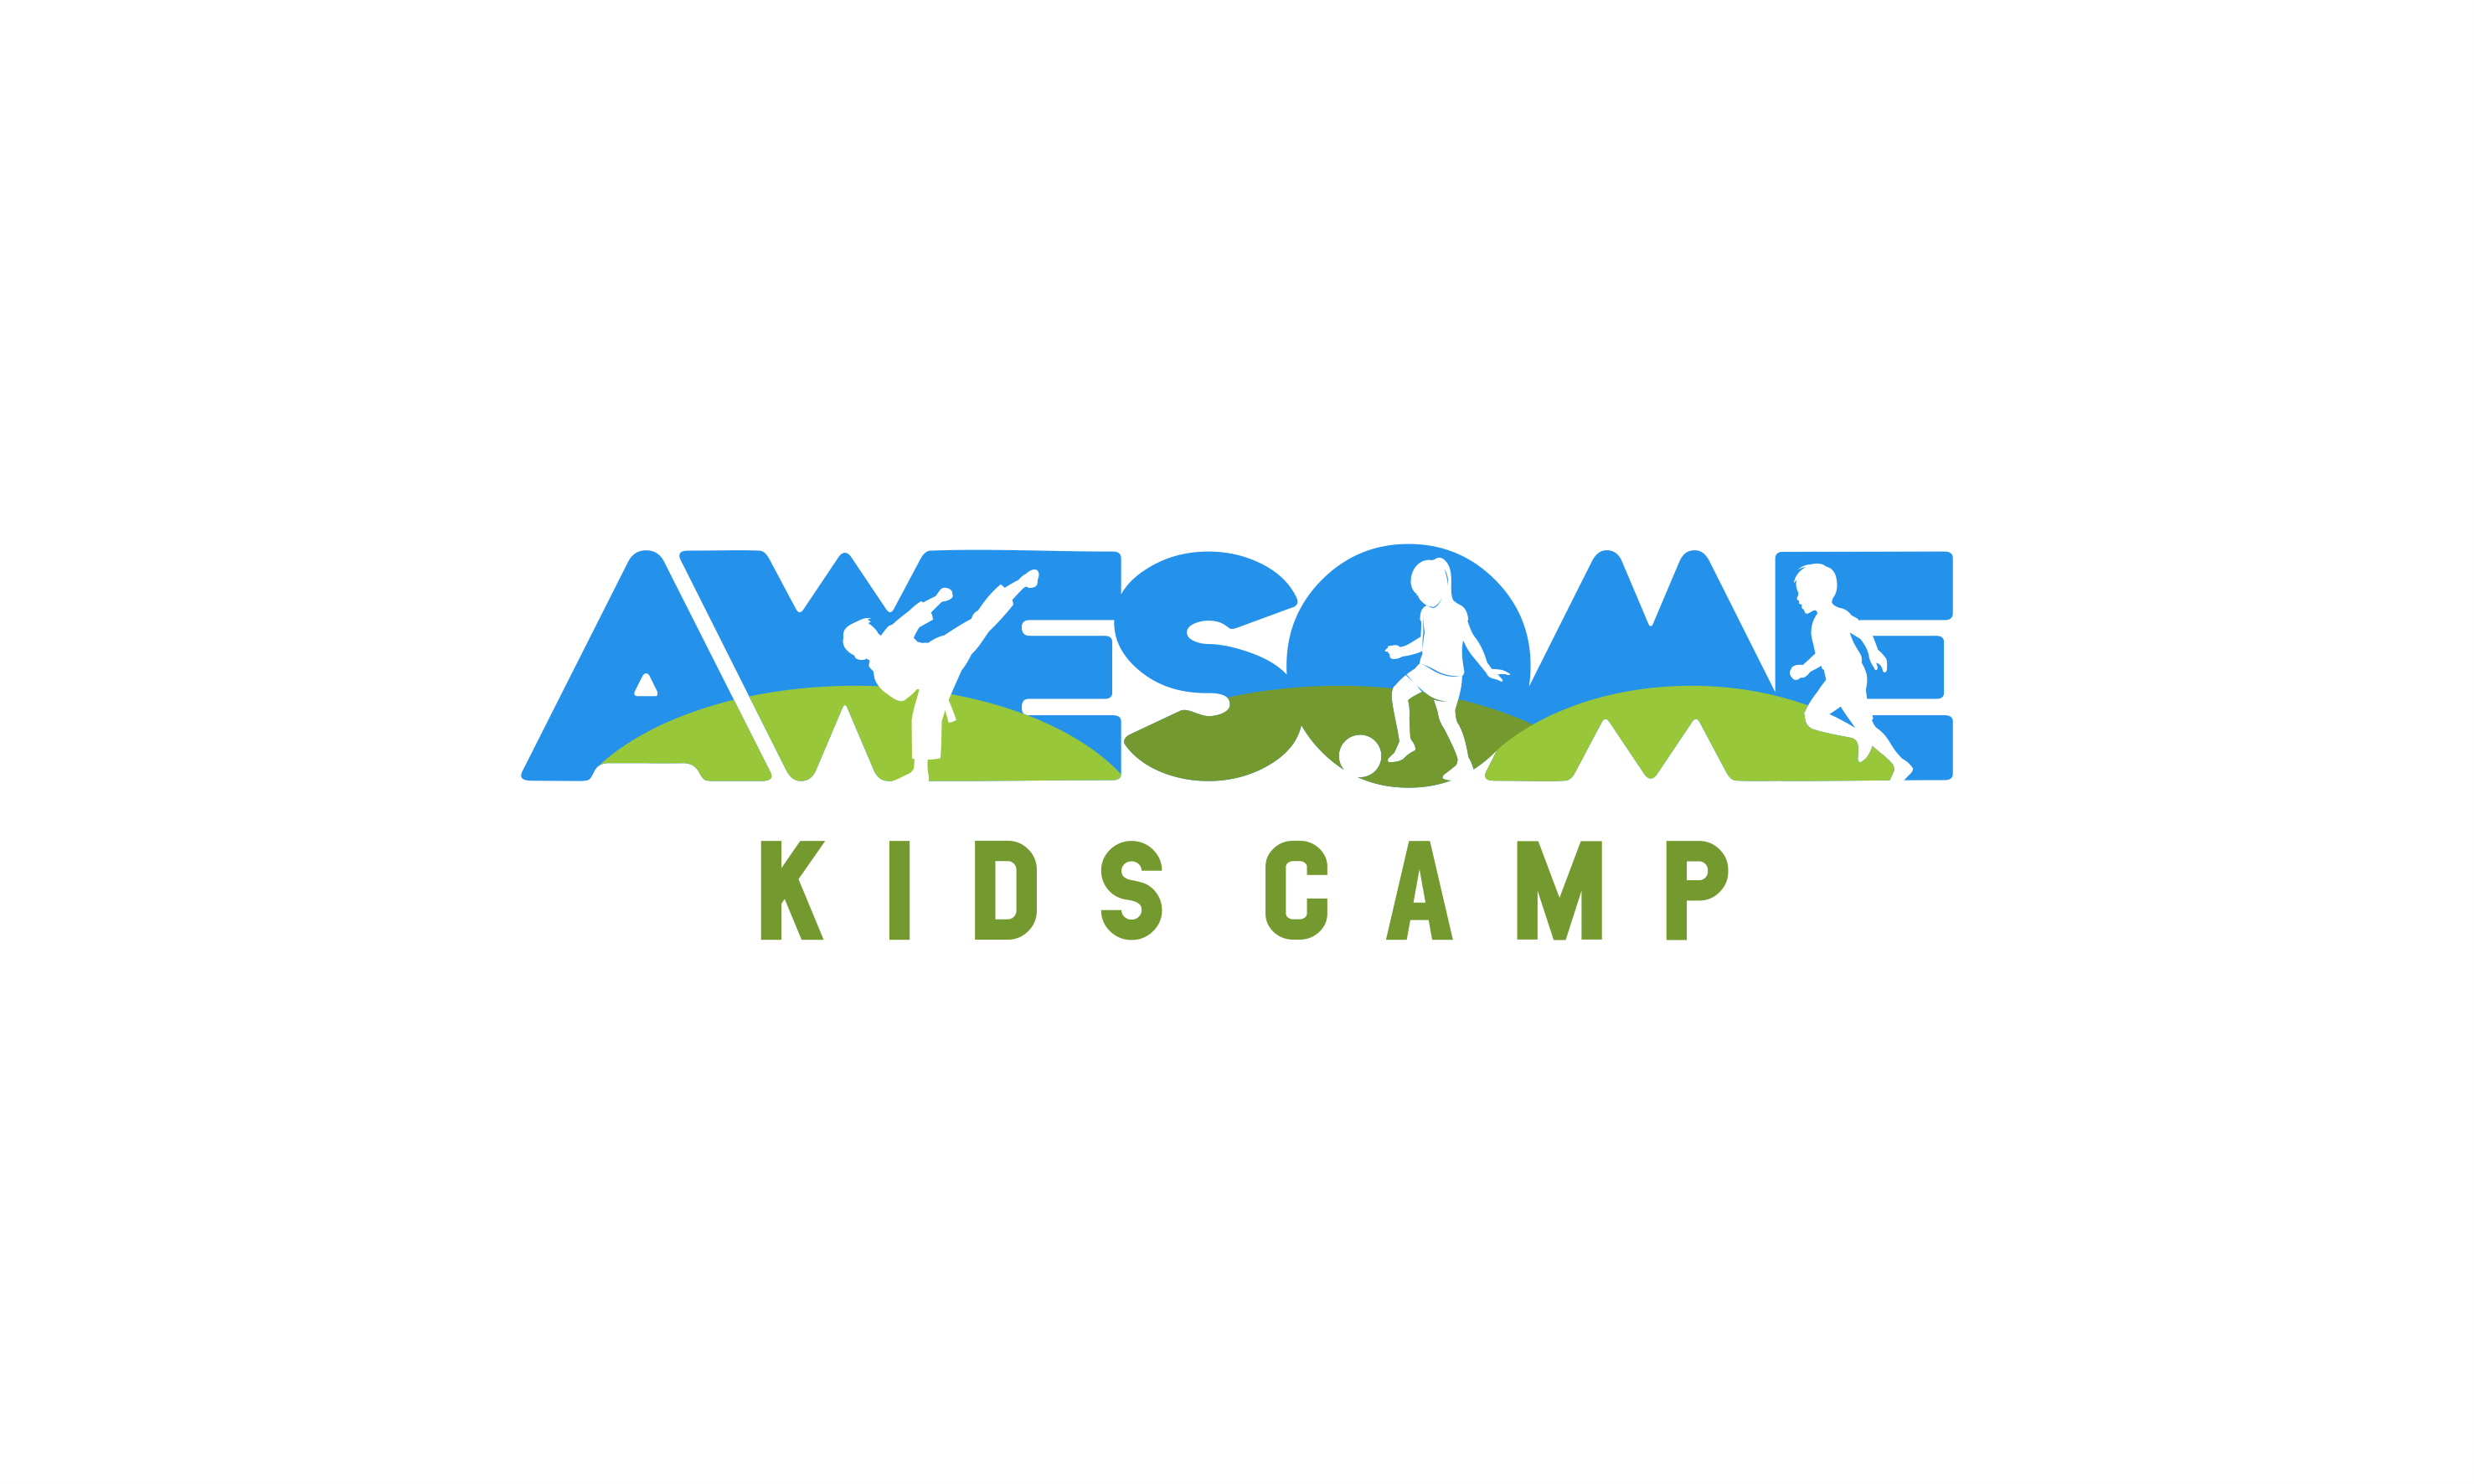 Help us make an exciting and fun van wrap desing for our new kids sports camp!